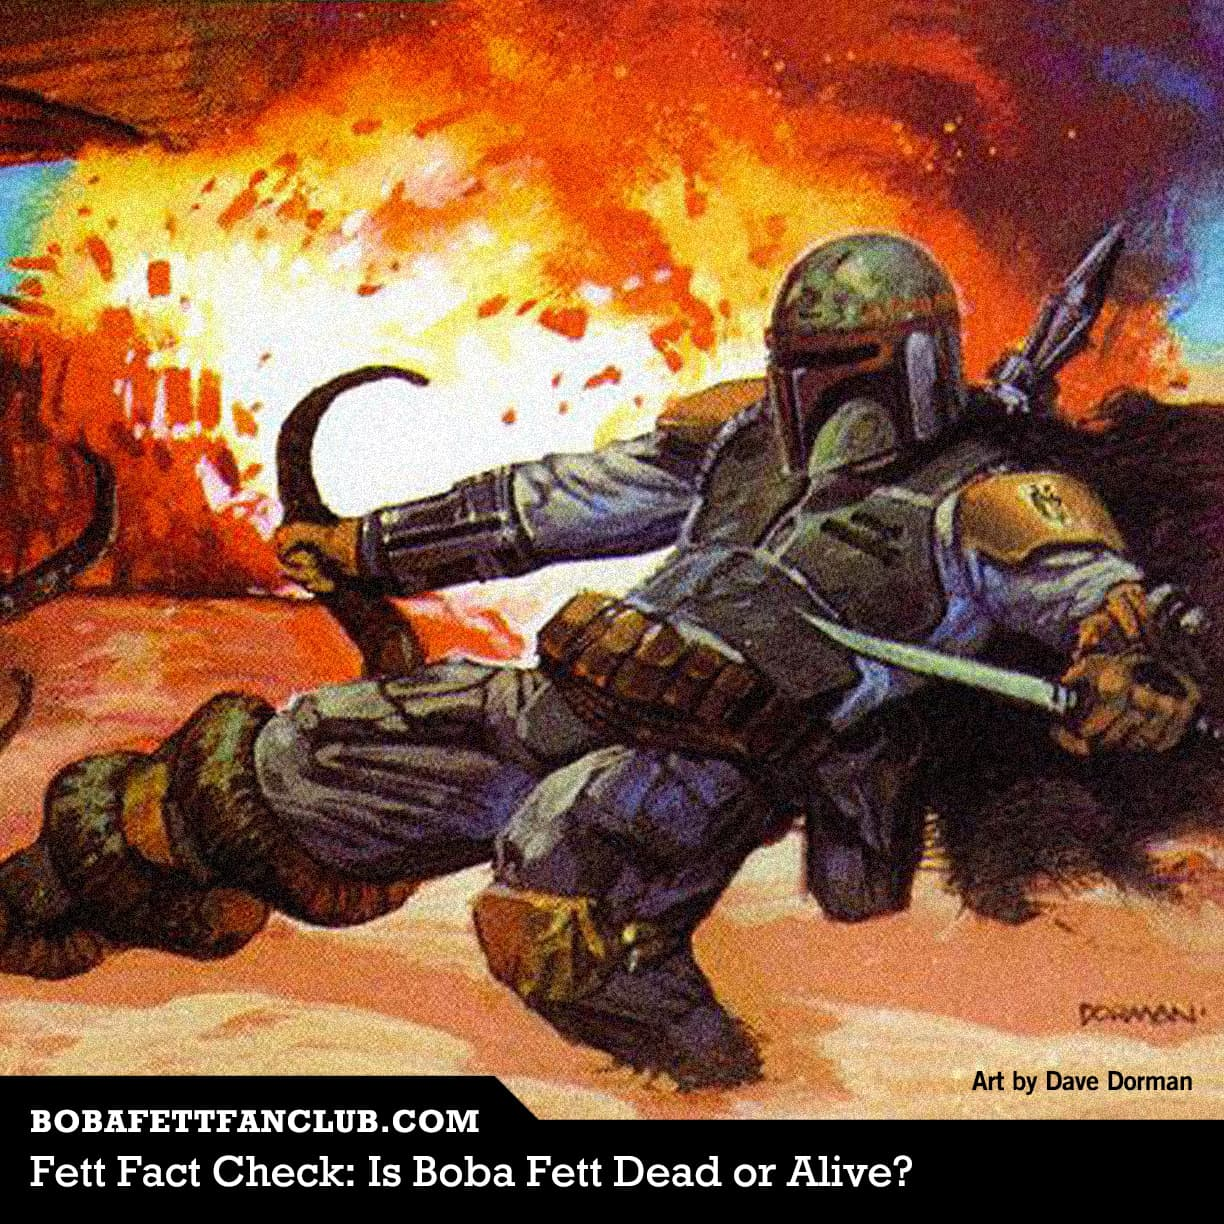 Is Boba Fett Dead or Alive?